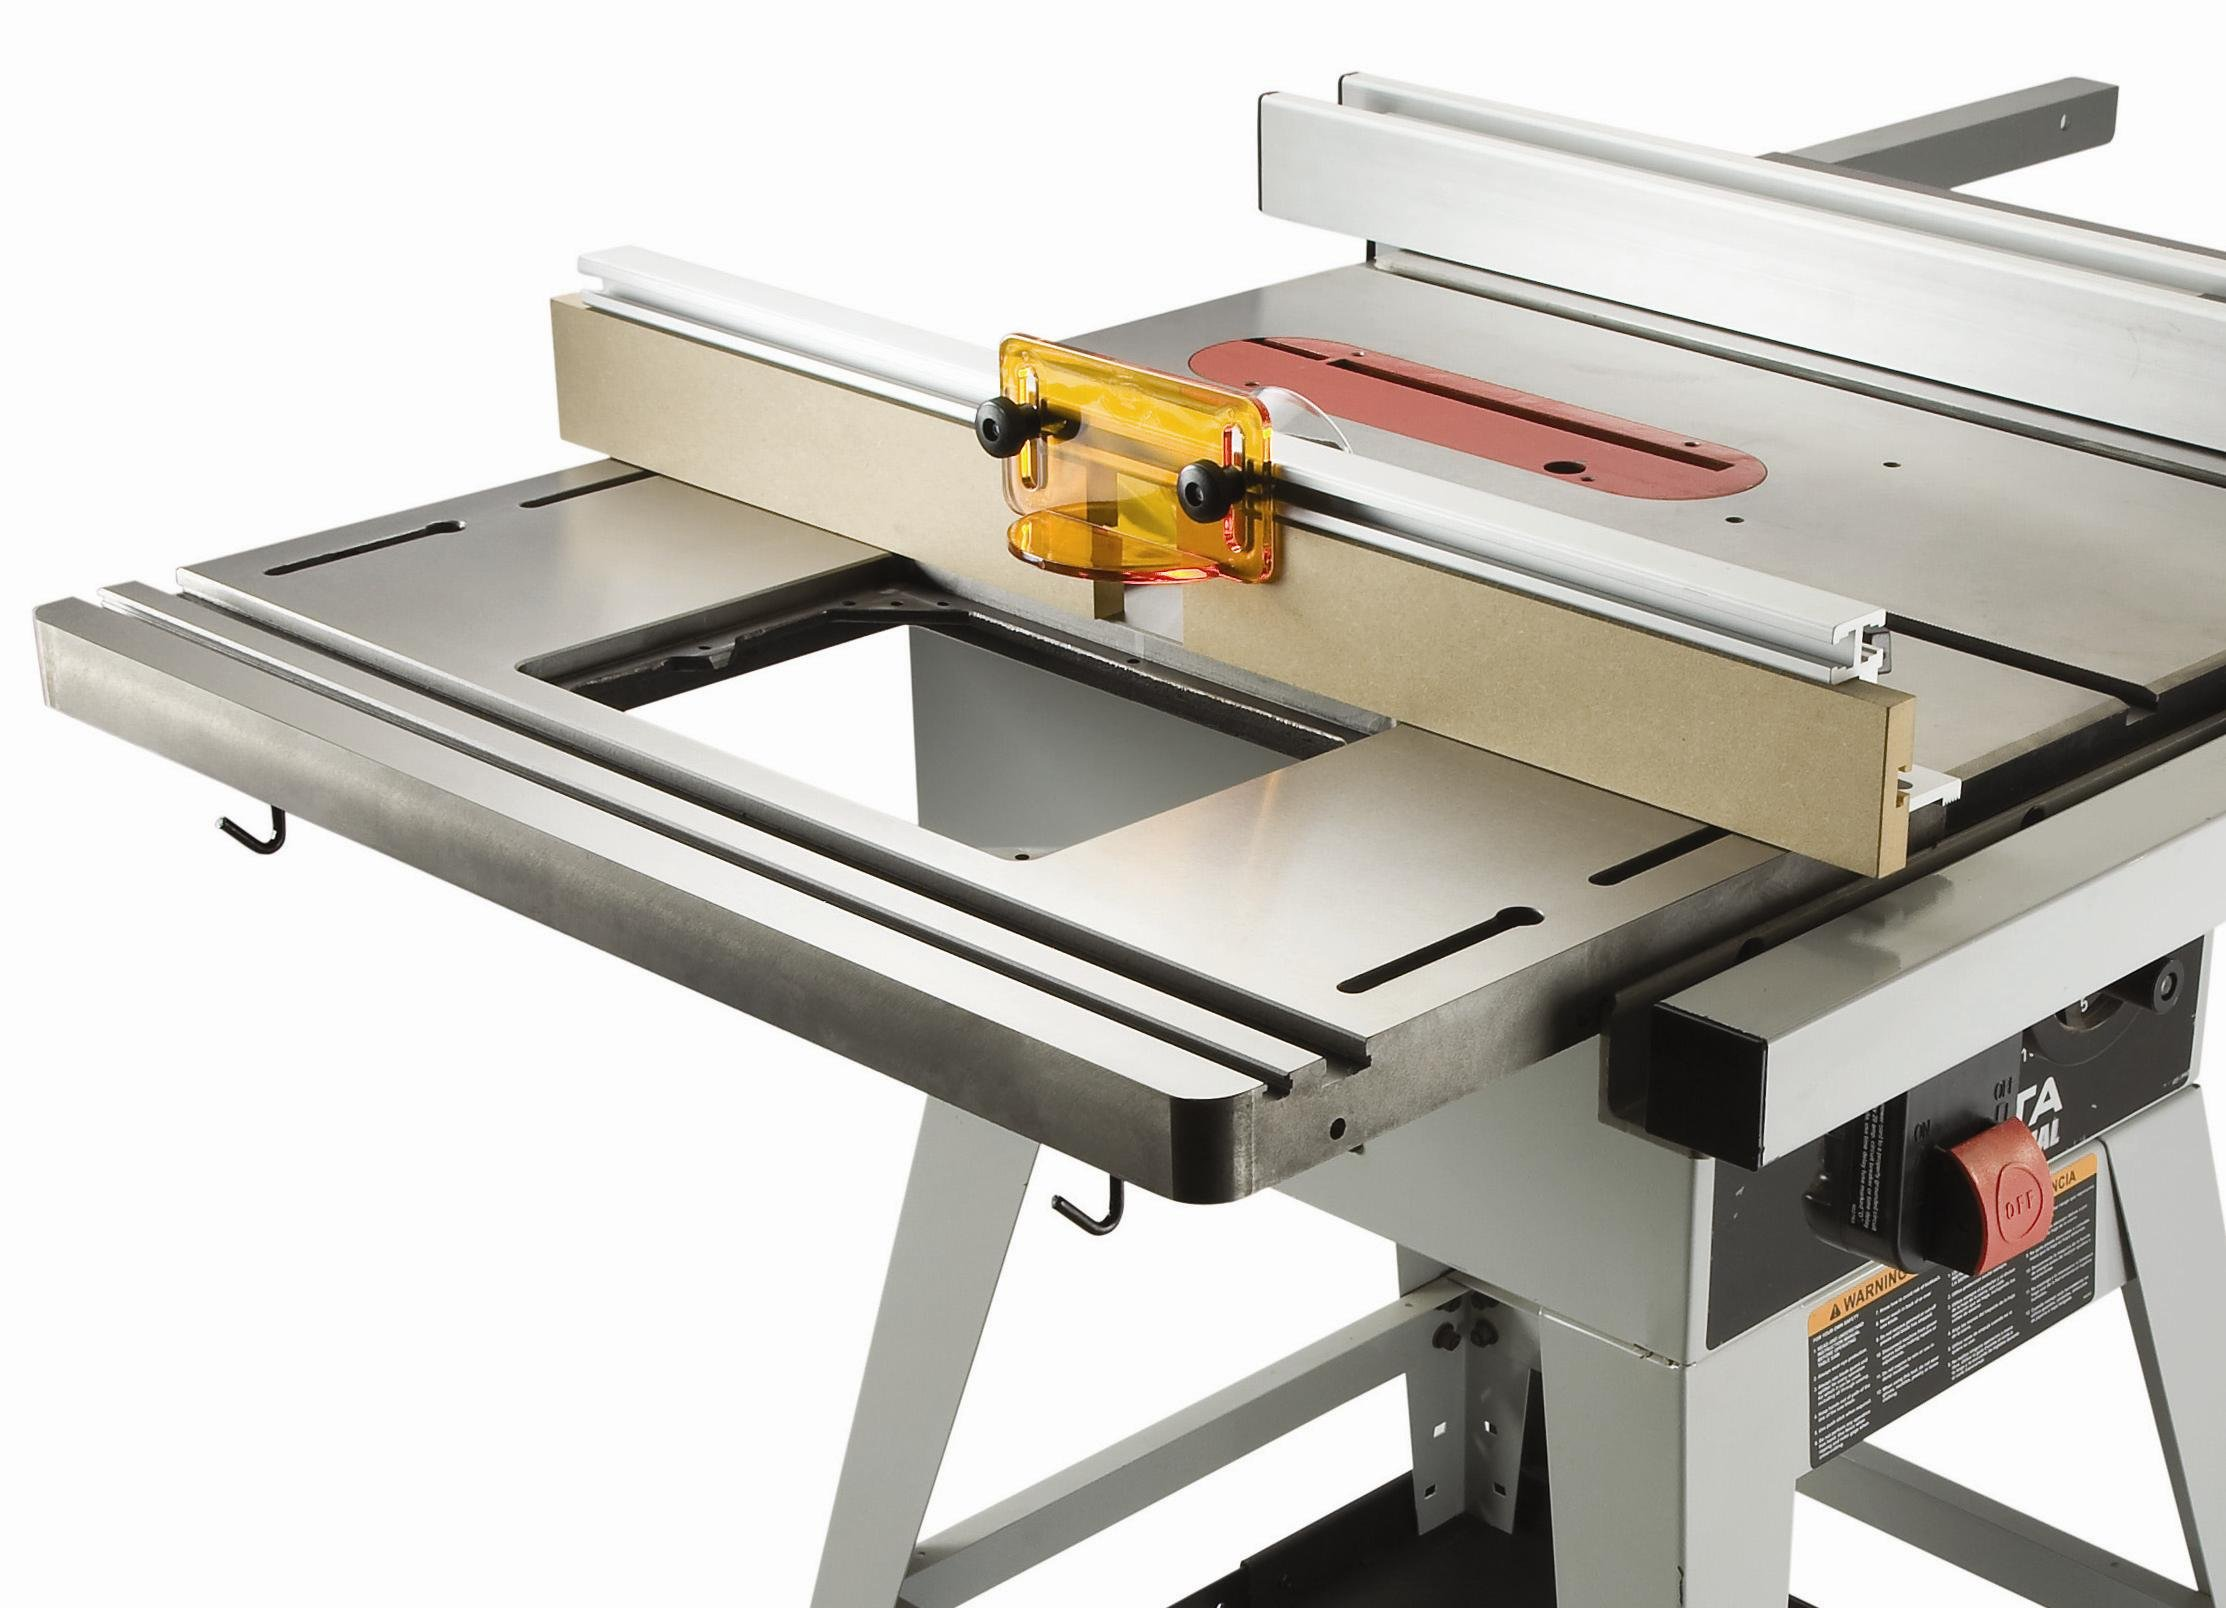 Bench Dog Tools 40-102 ProMax Cast Iron Router Table Extension by Bench Dog Tools